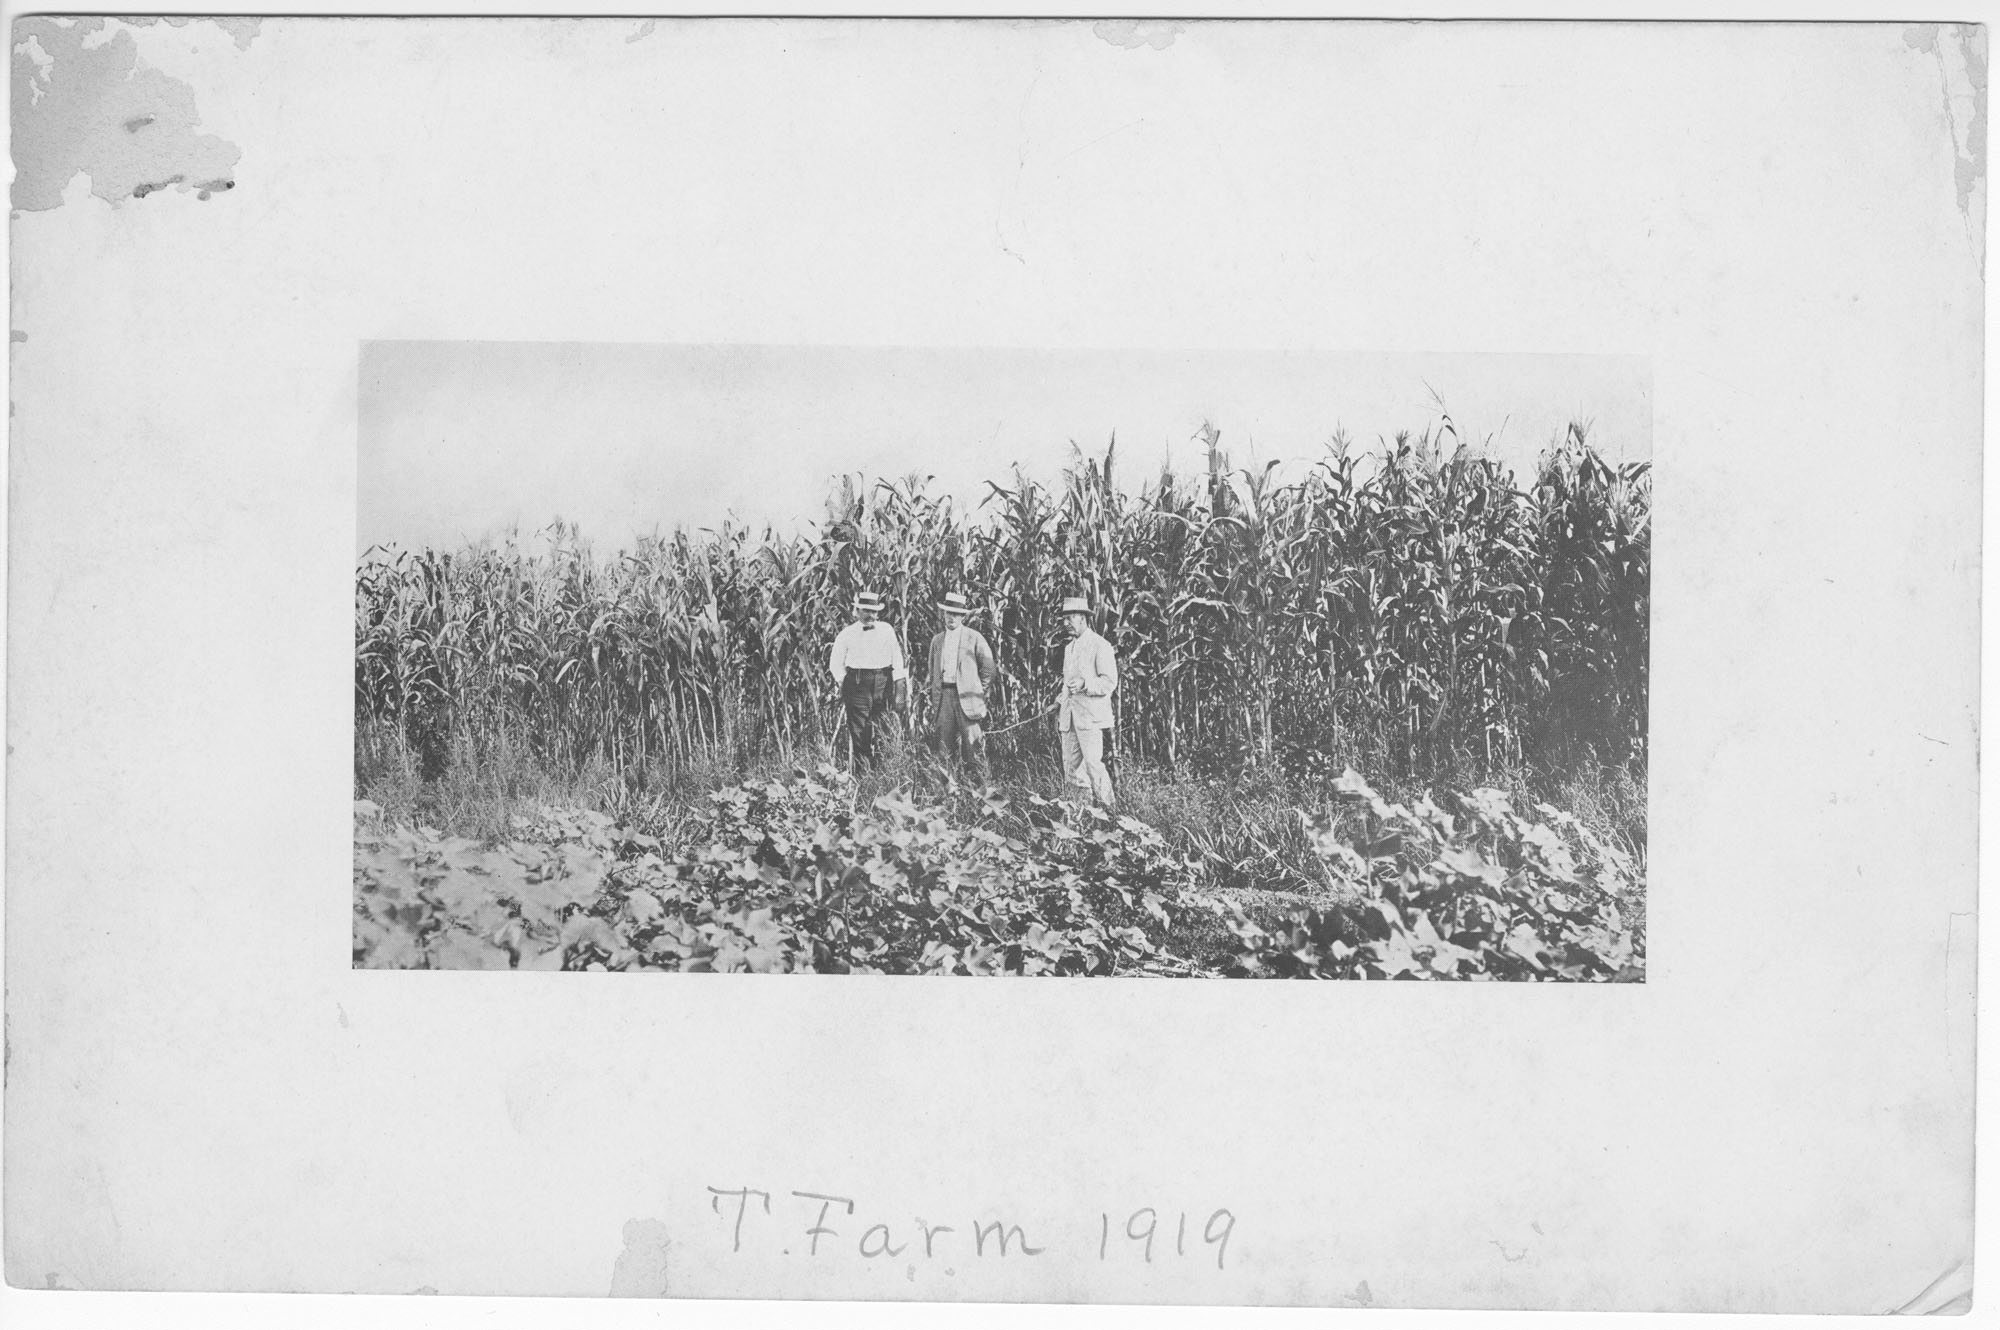 Prints of a Photograph Taken at an Old Rice Field at T. Farm